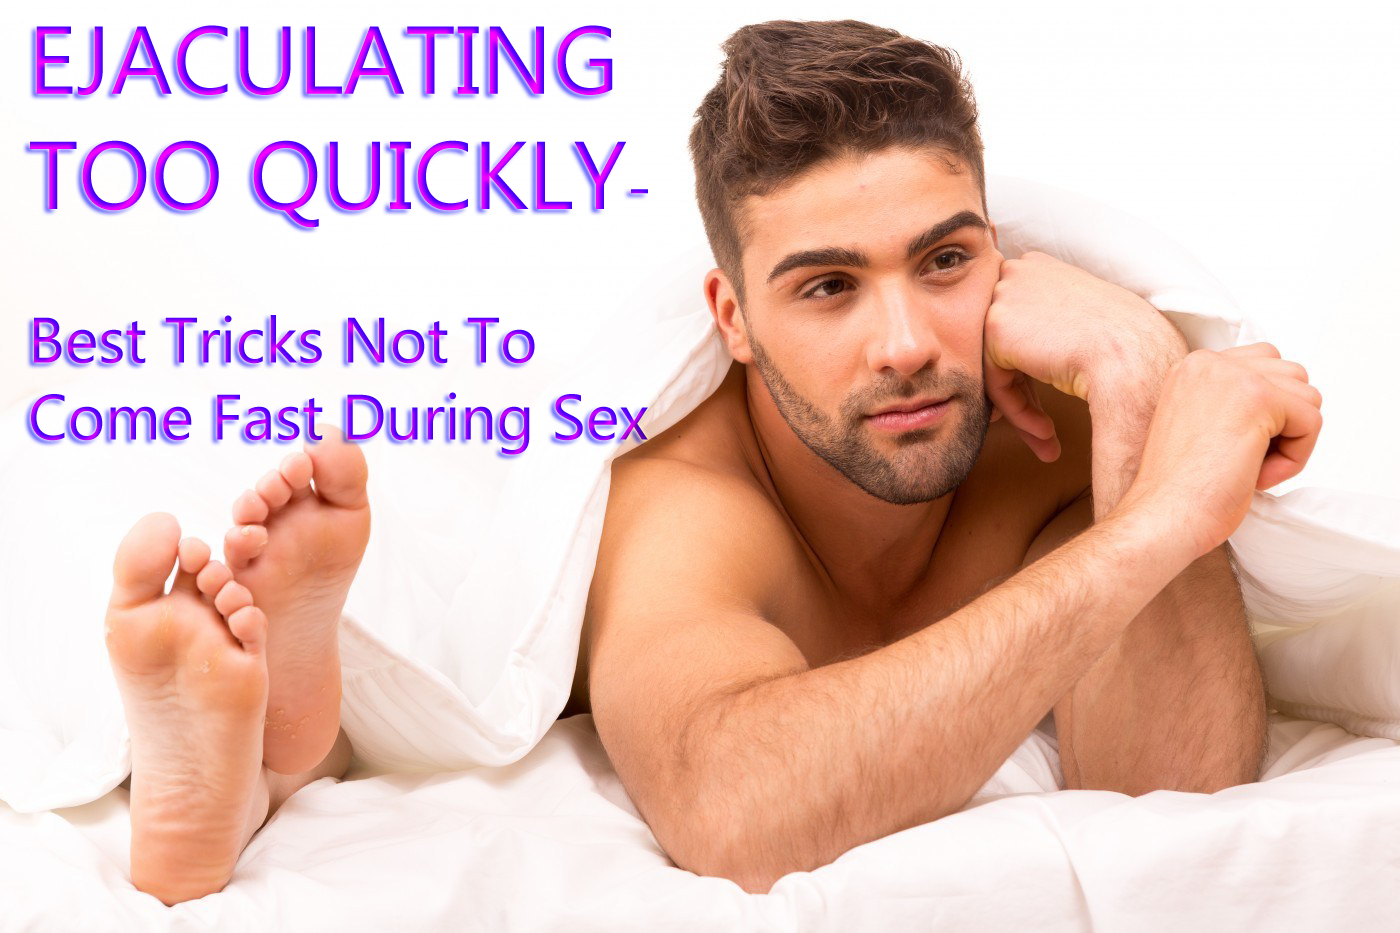 Ejaculating Too Quickly? Best Tricks Not To Come Fast During Sex